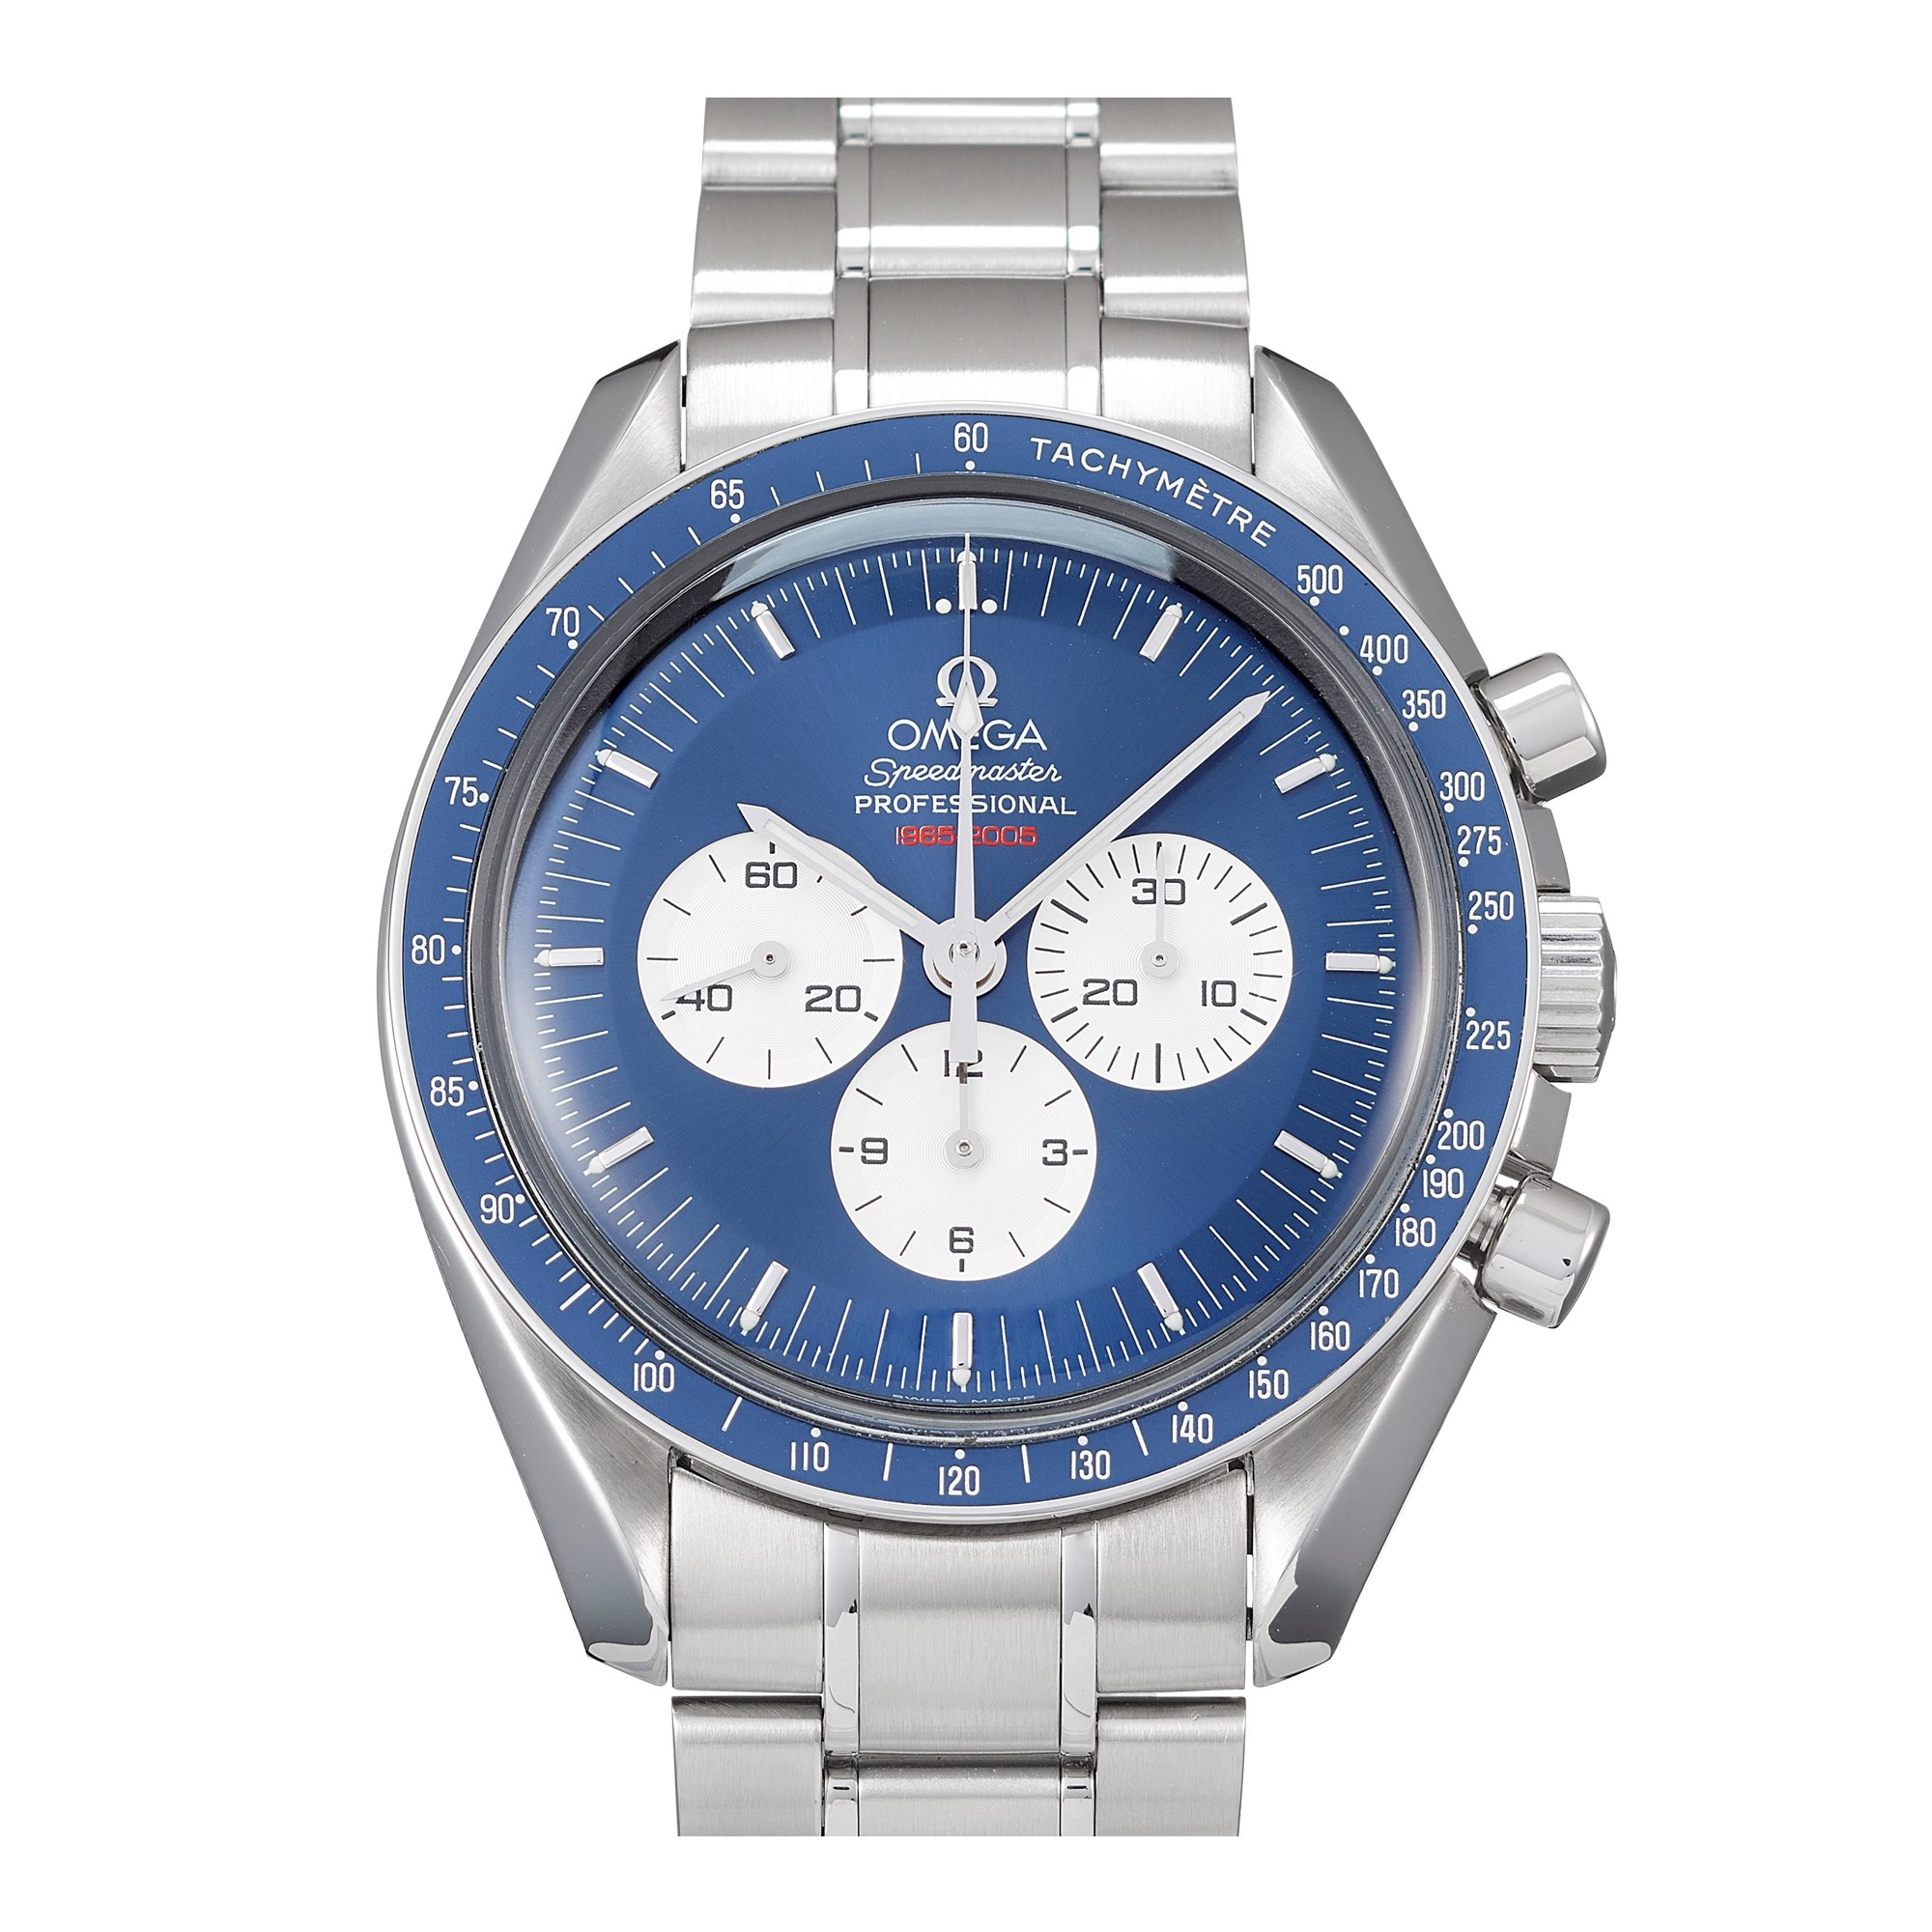 Omega Speedmaster Professional Moonwatch Gemini IV 40th Anniversary Stainless Steel 3565.80.00